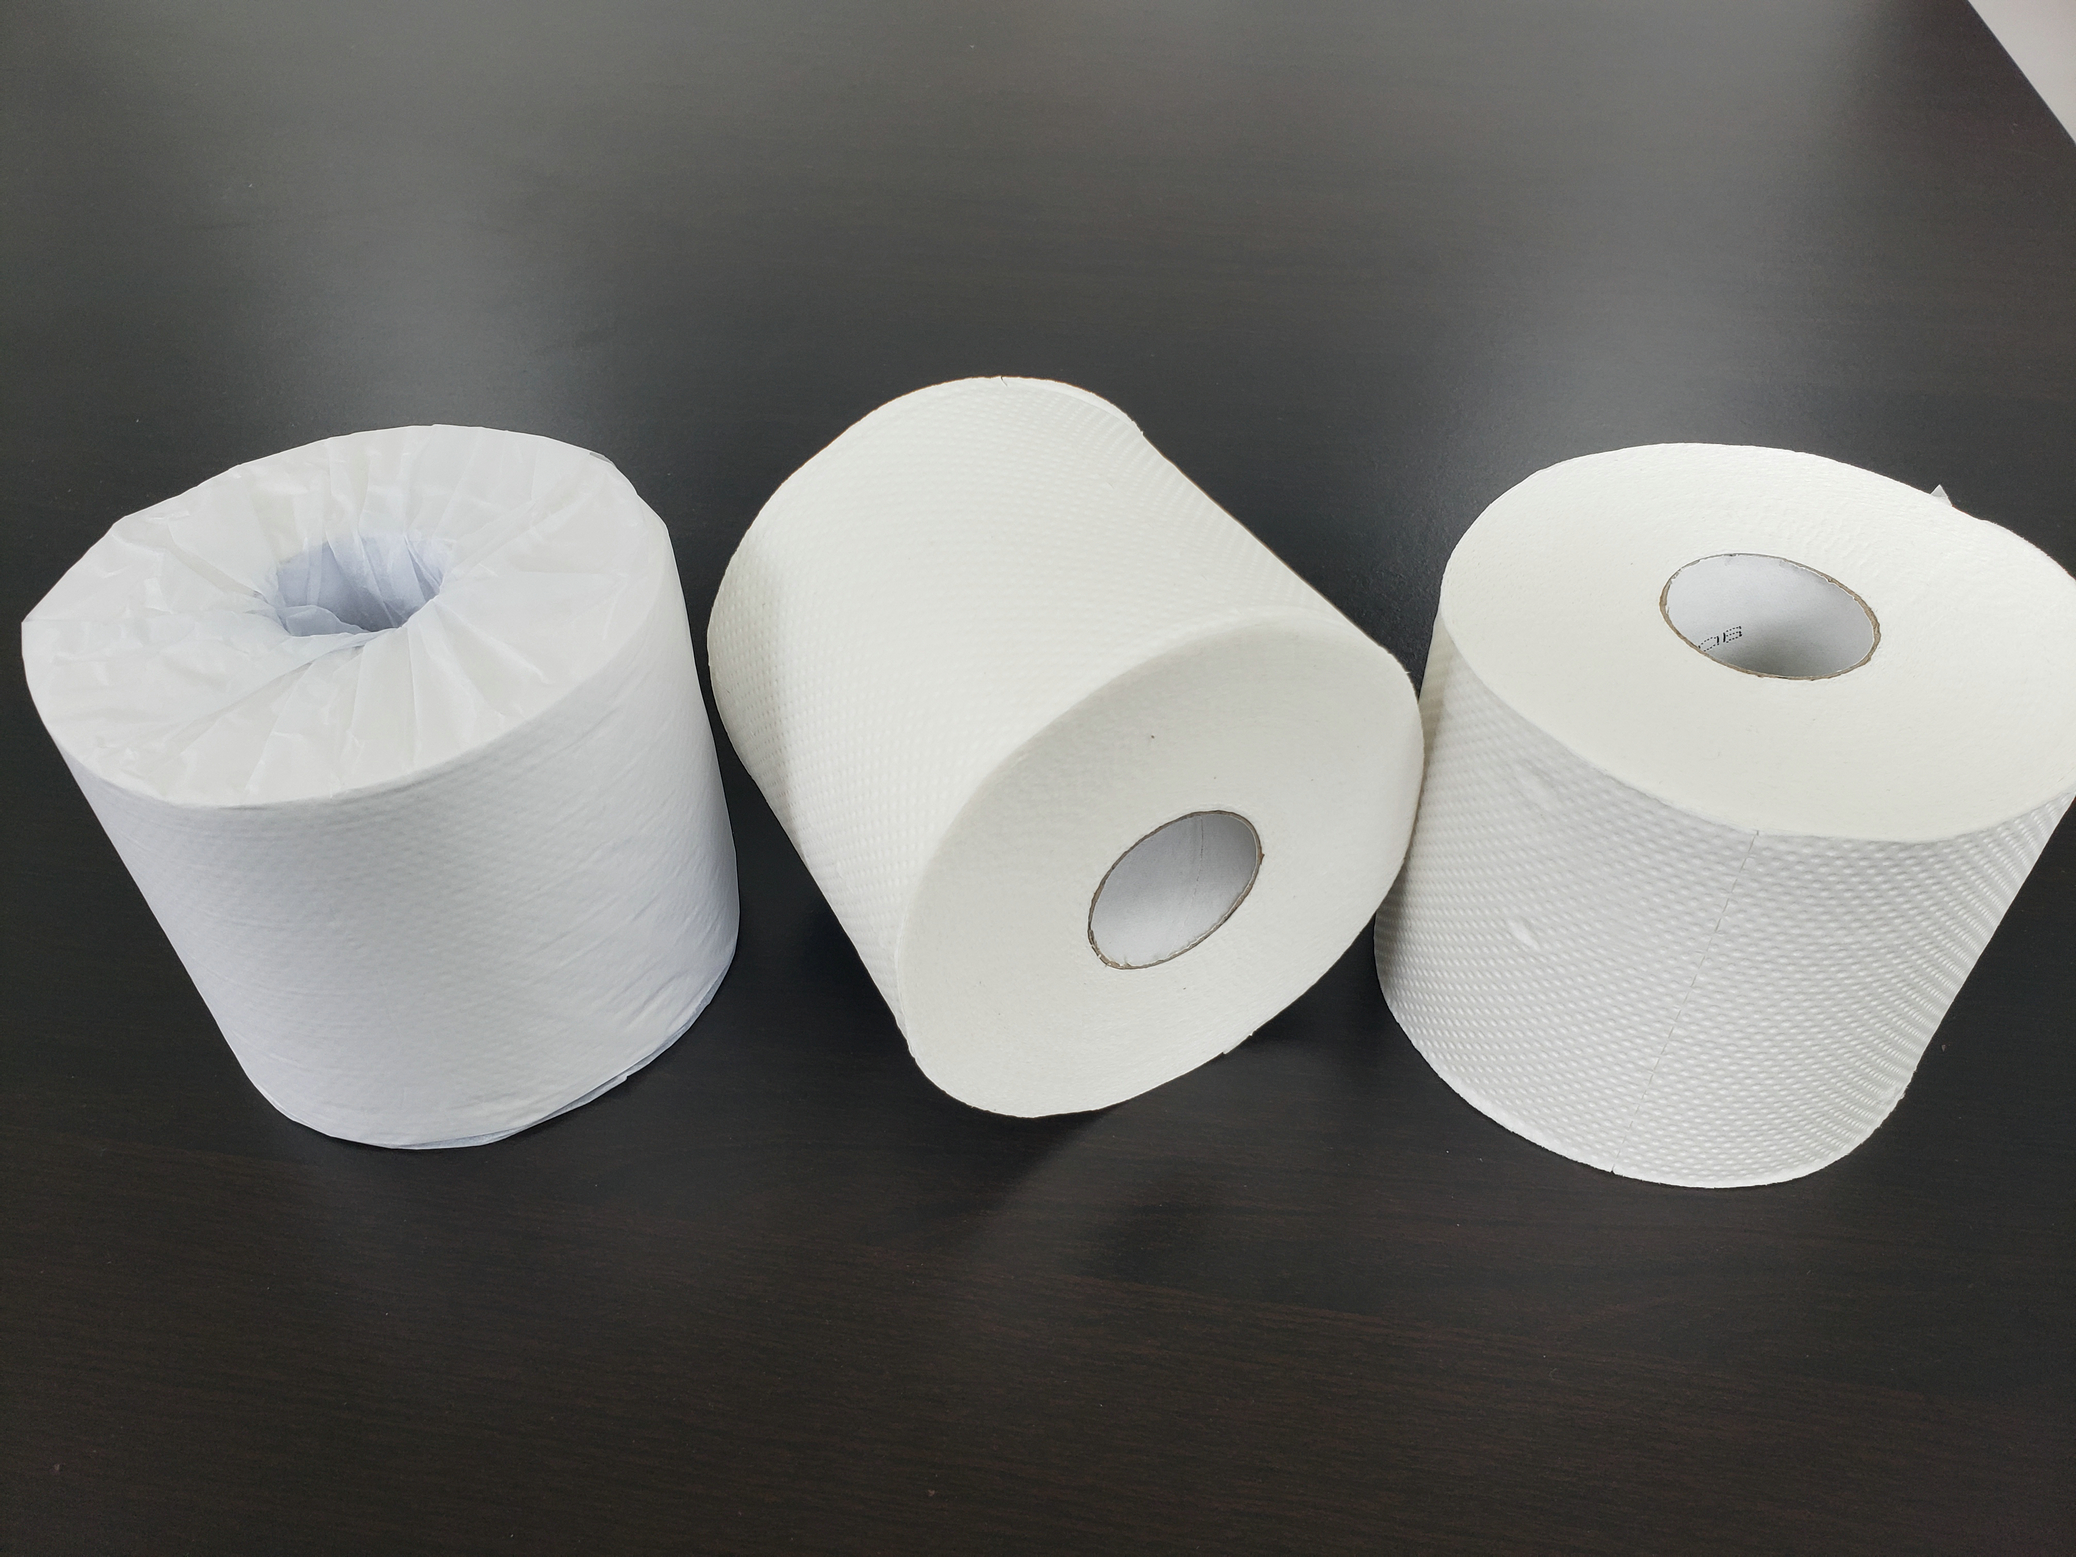 Factory Price Recycled Pulp 4 Rolls Pack Hotel Room Small Roll Paper Core Toilet Paper Sanitary Paper